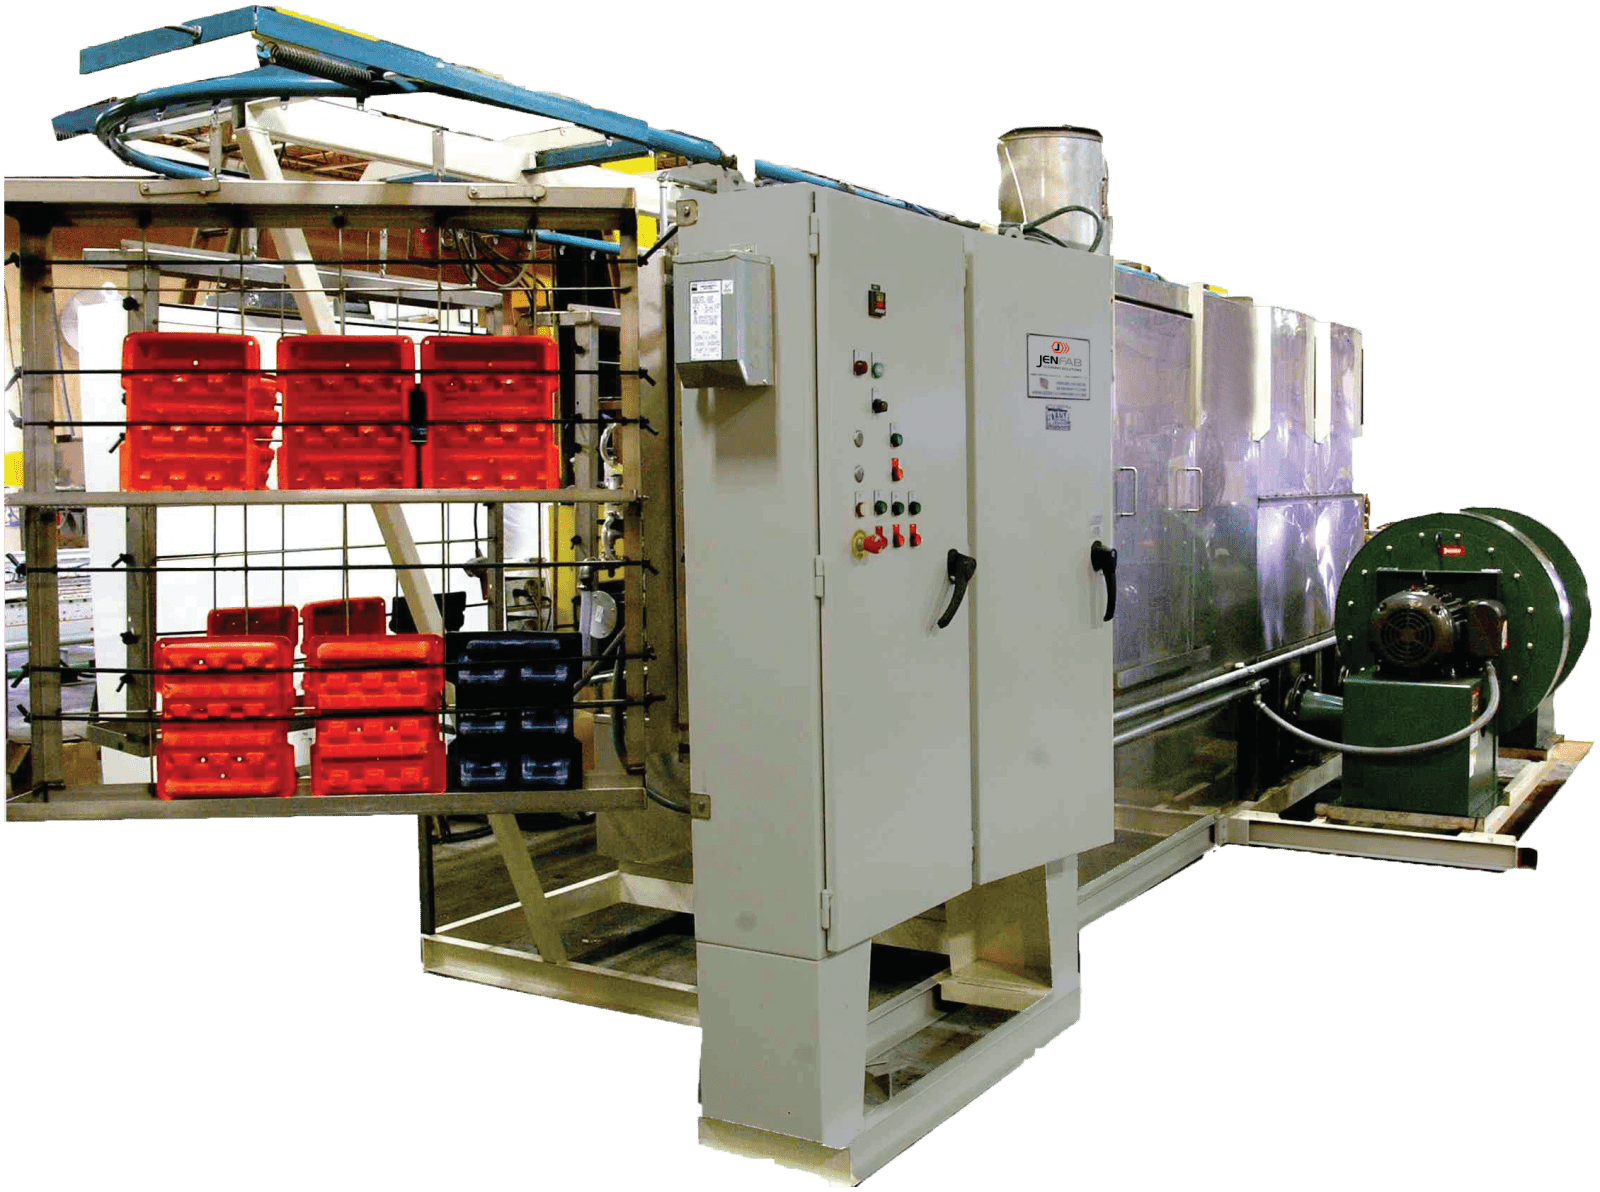 dunnage parts washer